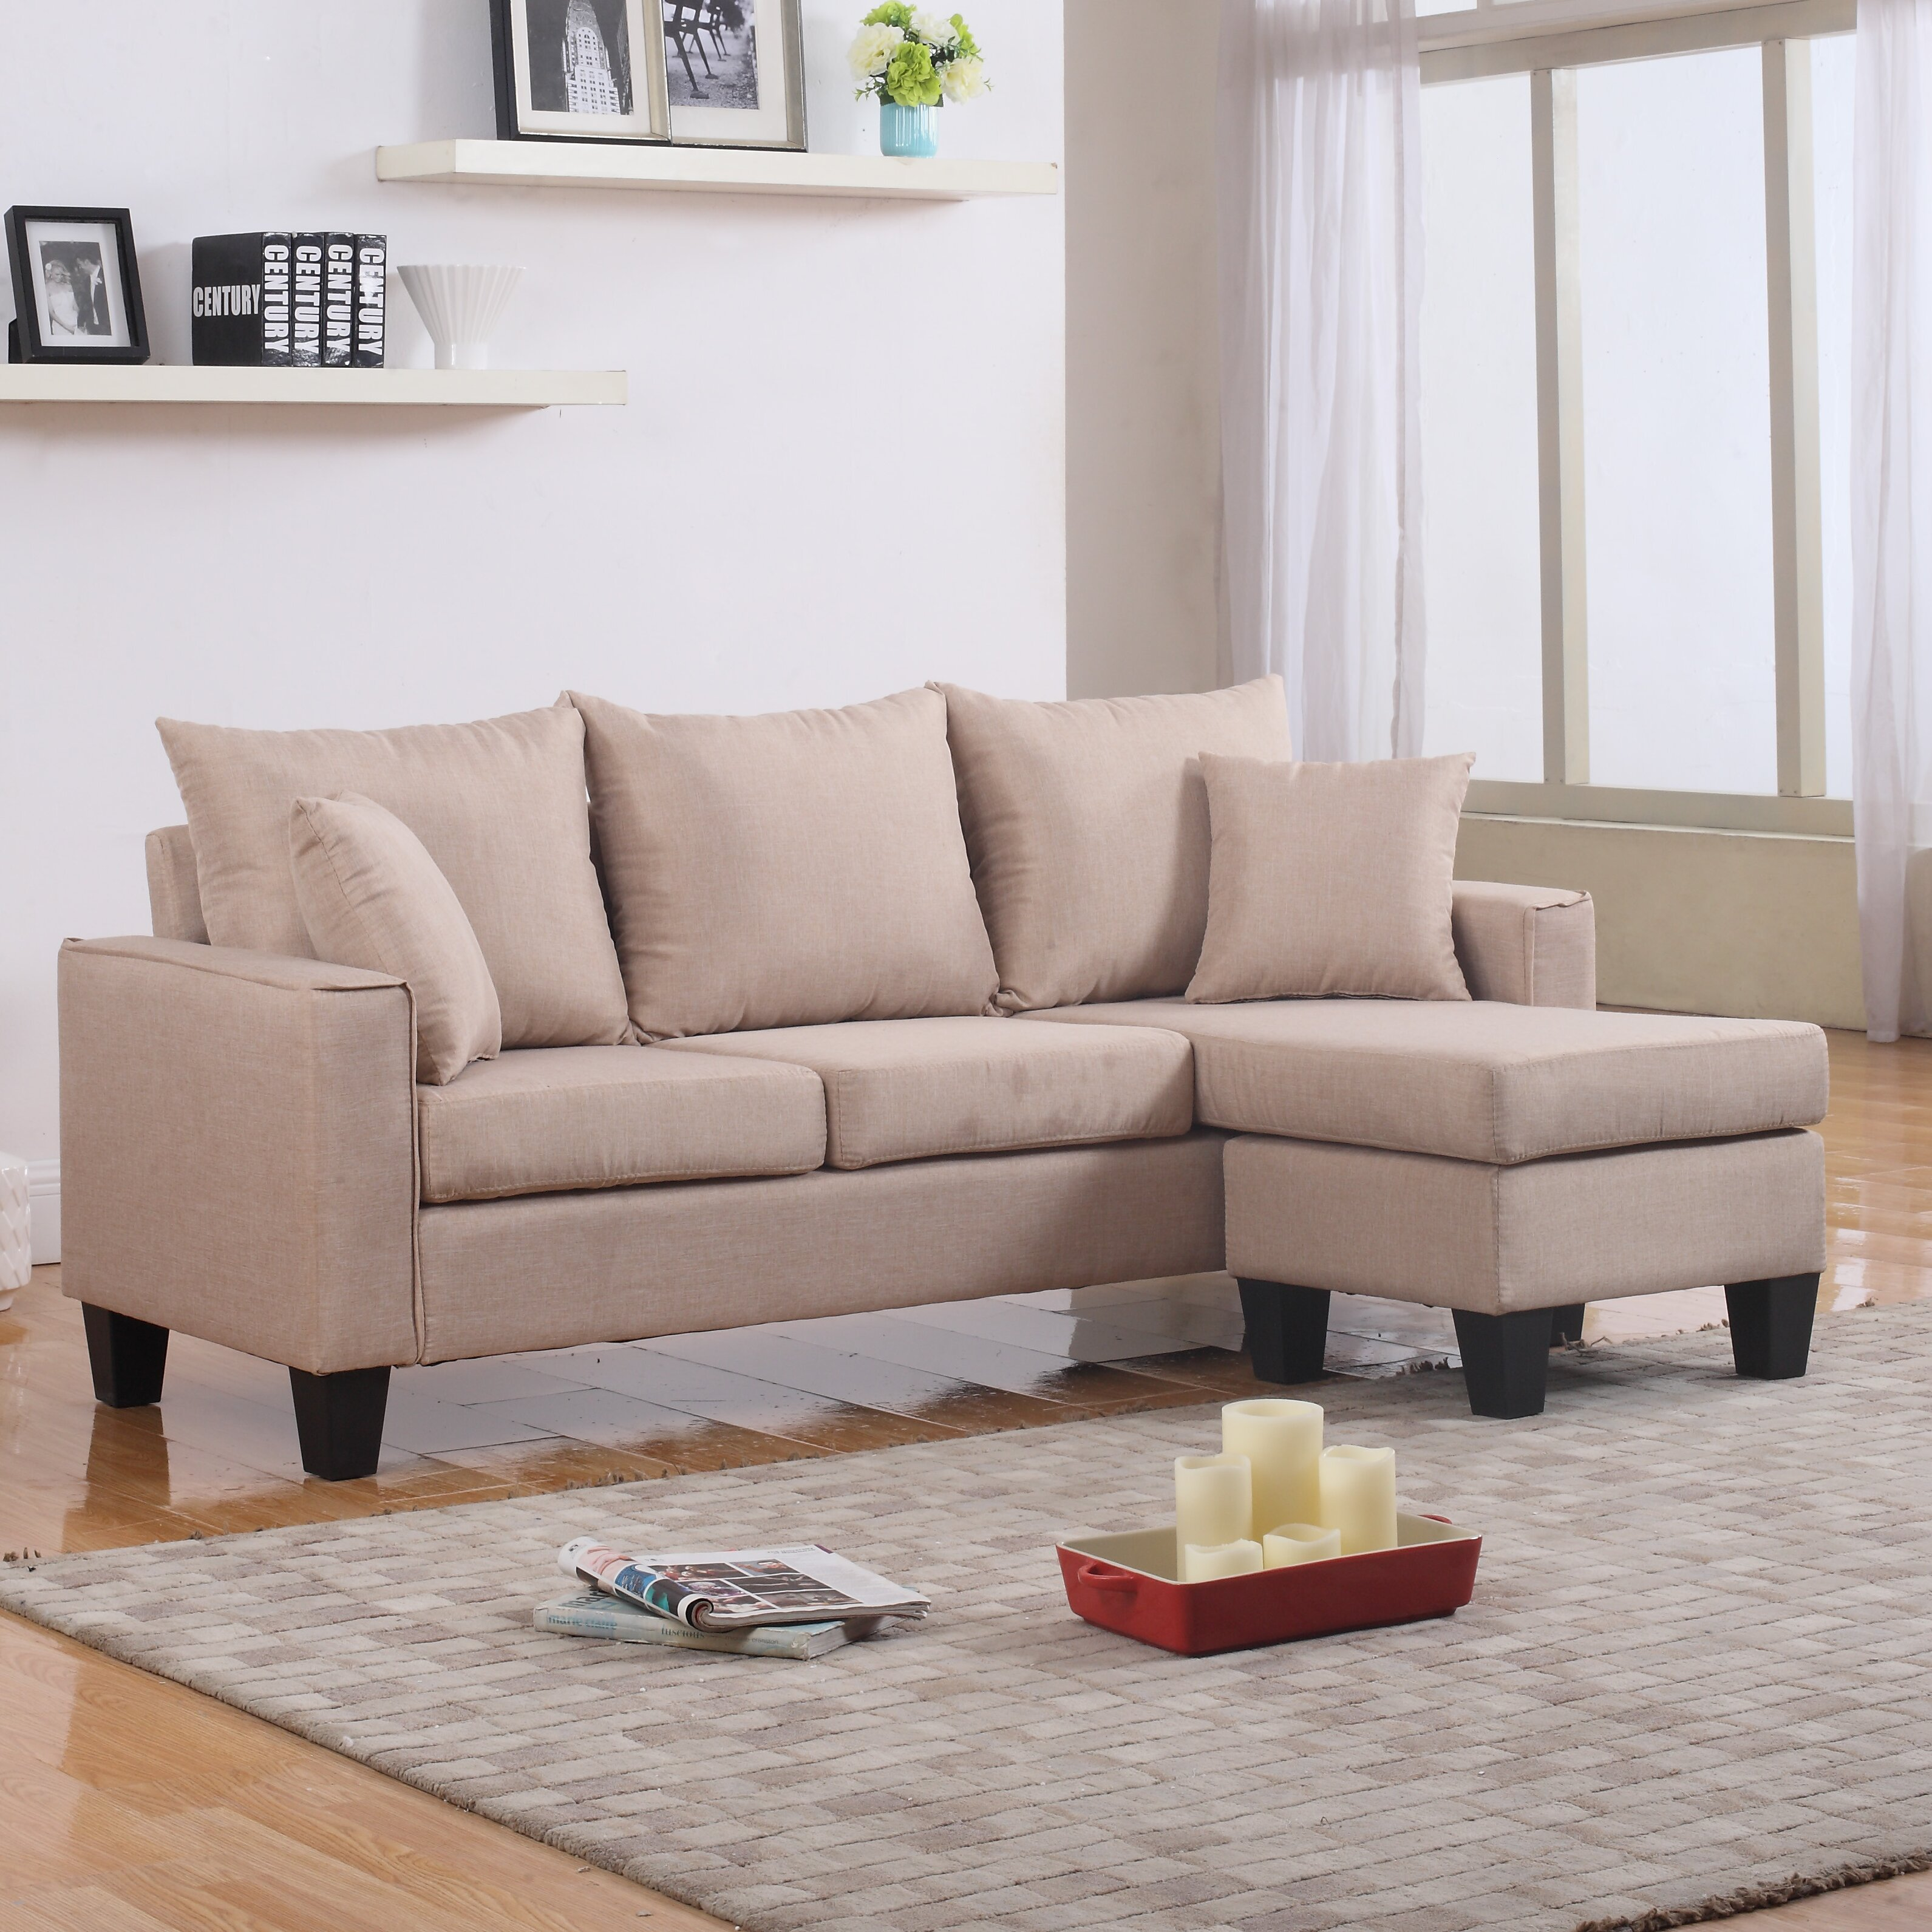 Madison home usa reversible chaise sectional wayfair - Small couch with chaise ...